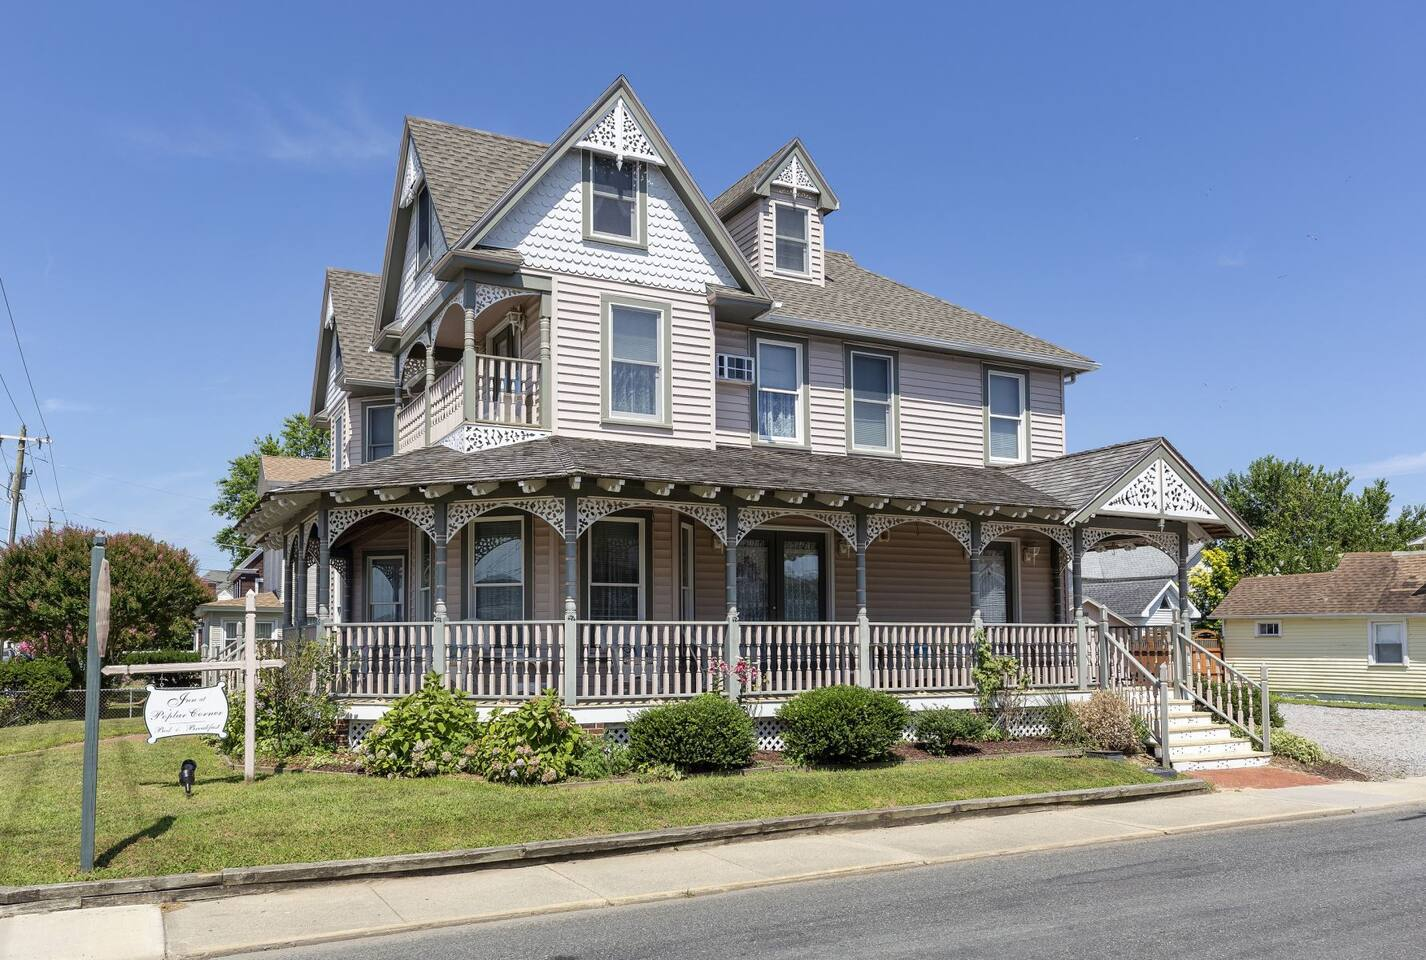 The Inn at Poplar Corner is a former B&B - Now an awesome Vacation Home.